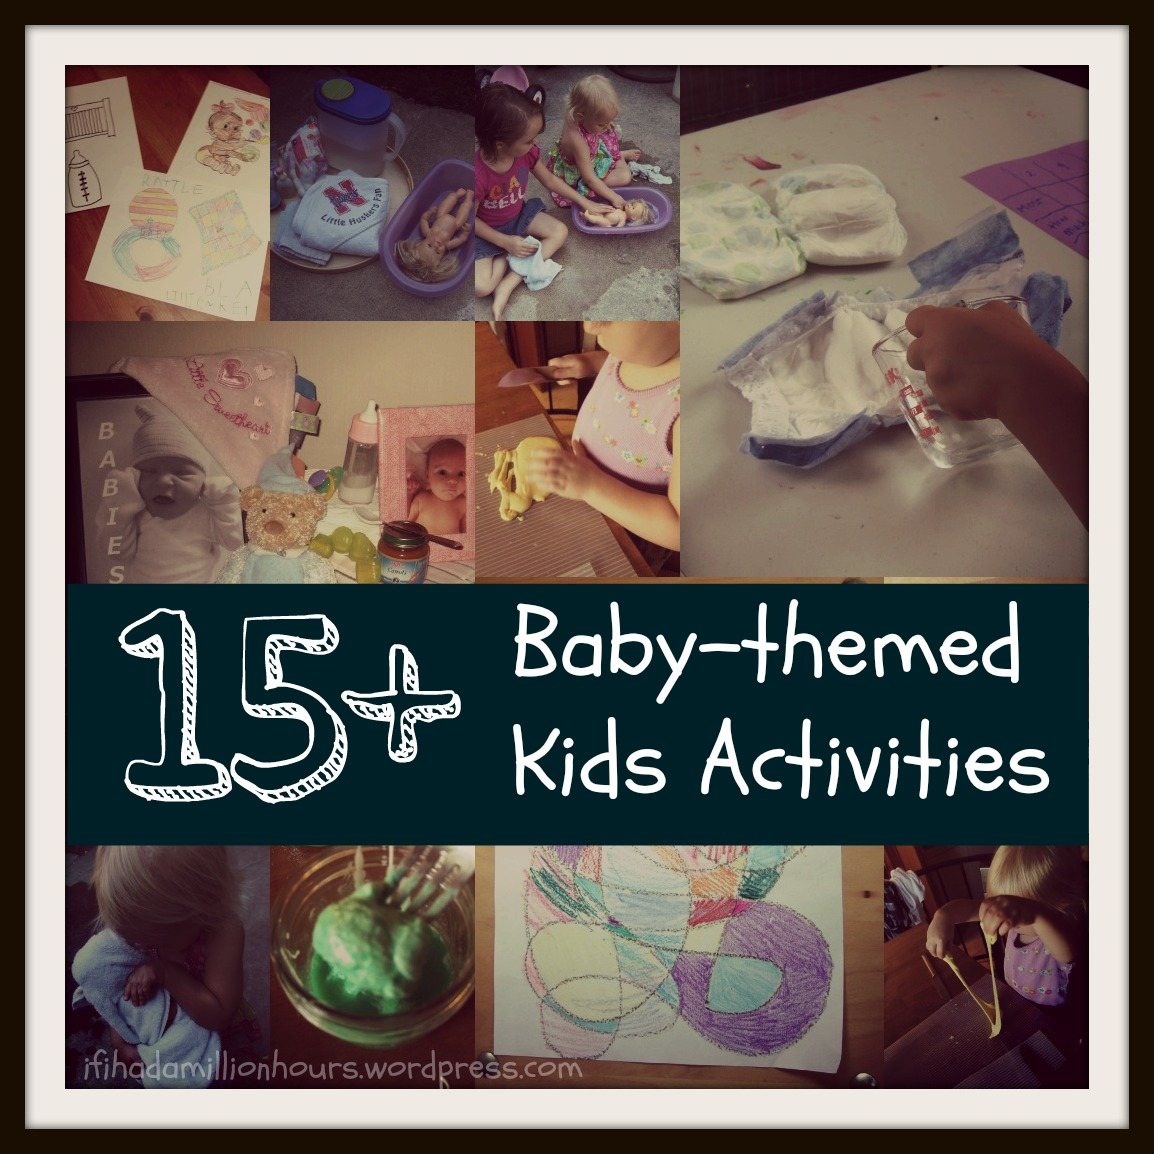 Babies Weekly Theme 1 If I Had A Million Hours